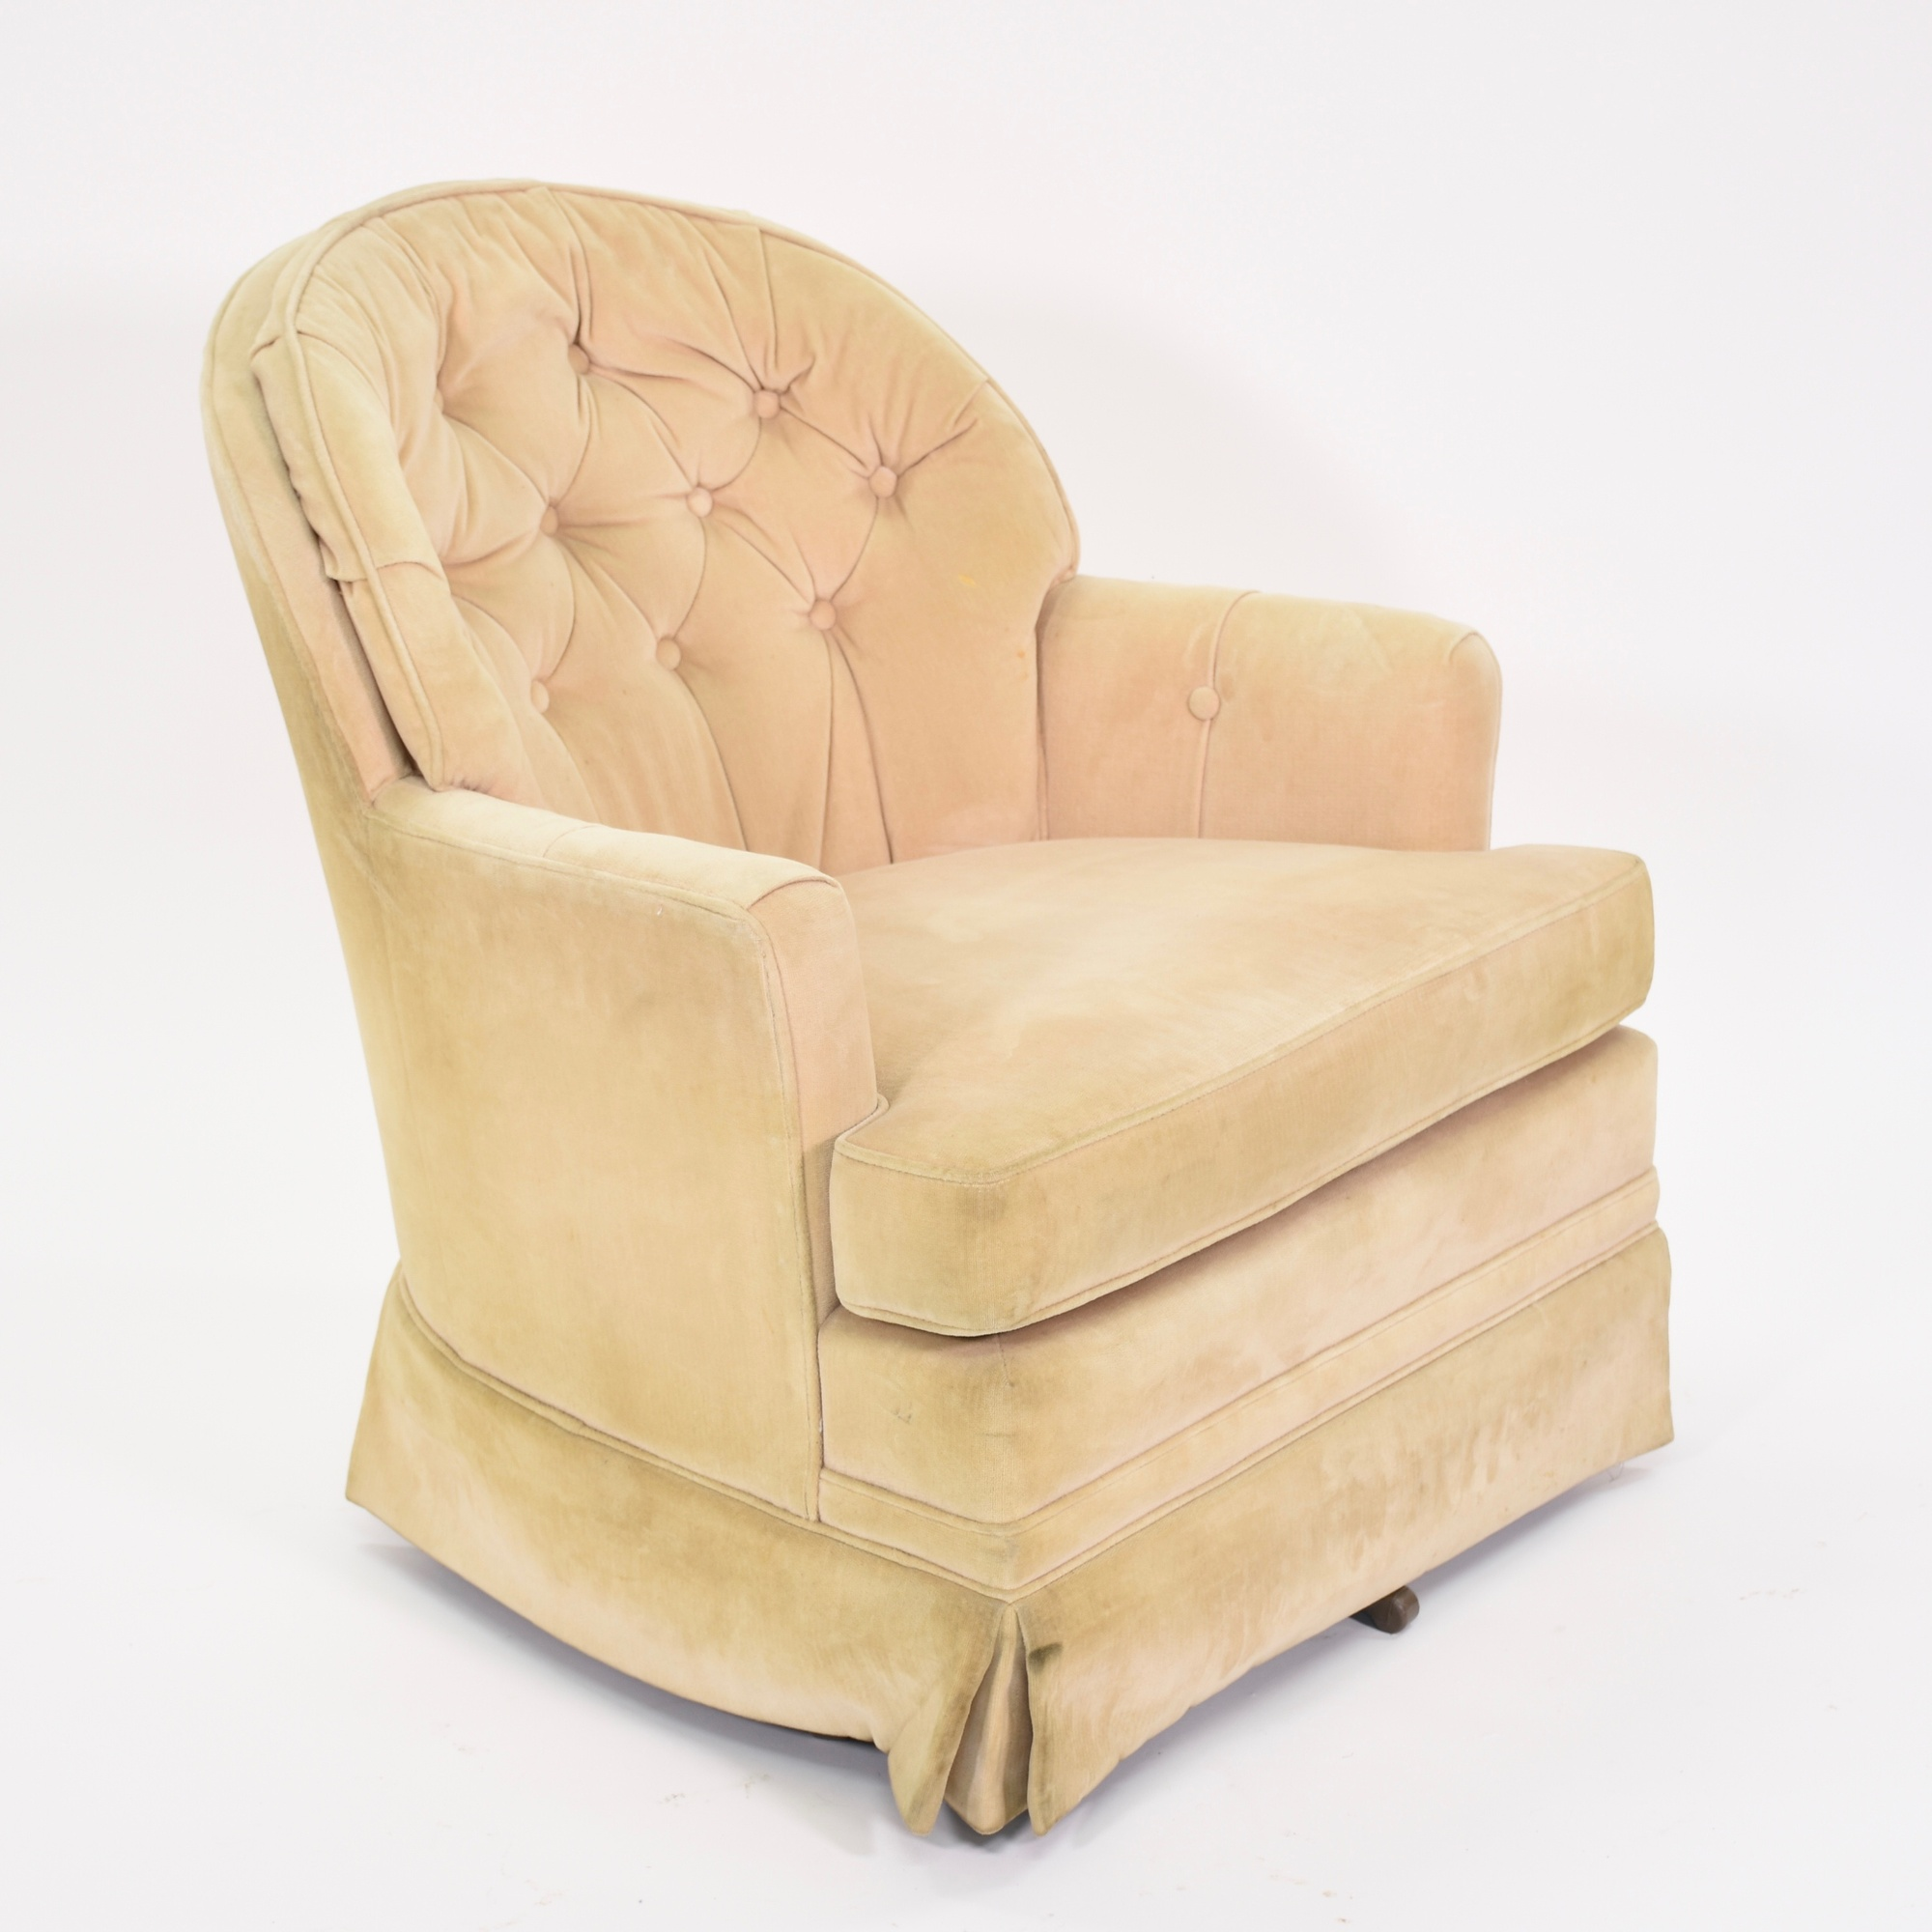 cream upholstered chair cream upholstered swivel club chair loveseat vintage 13626 | convert?w=2000&h=2000&fit=crop&rotate=exif